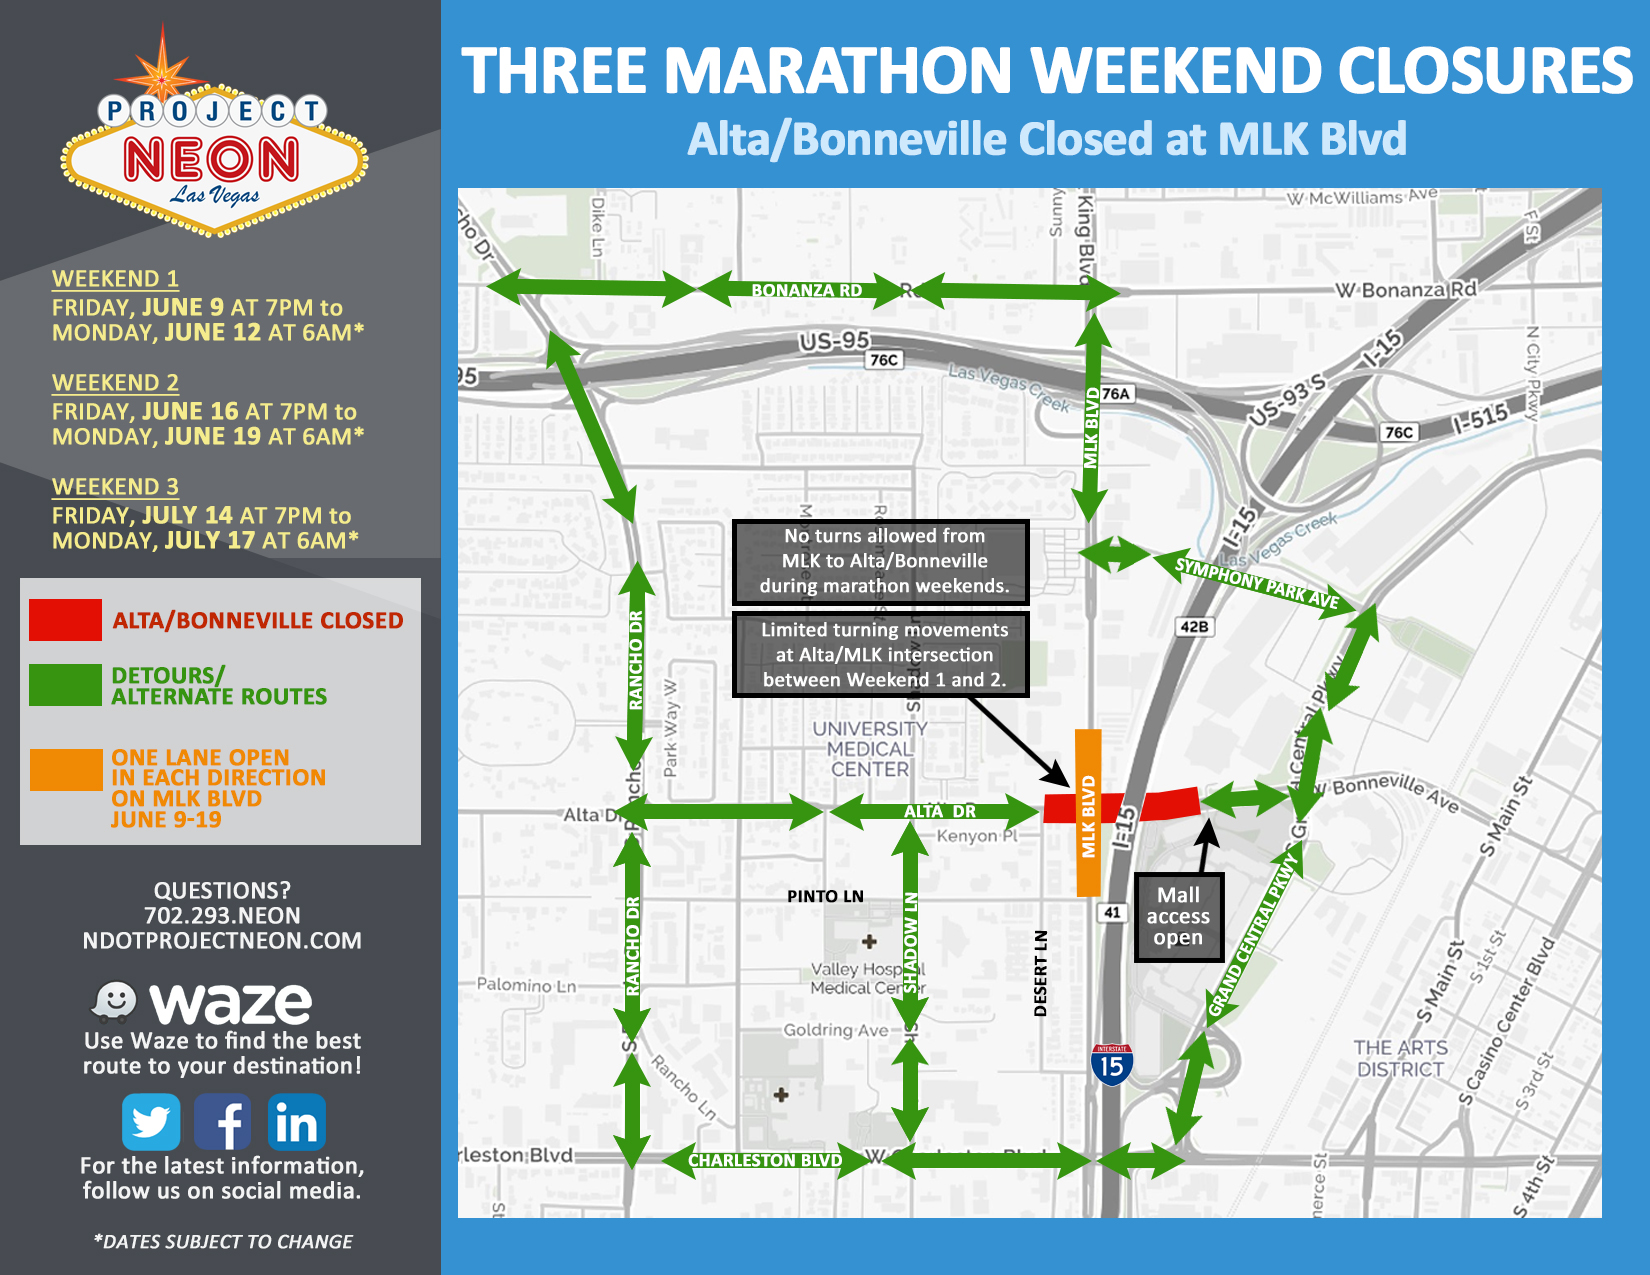 Alta Marathon Weekend Closures